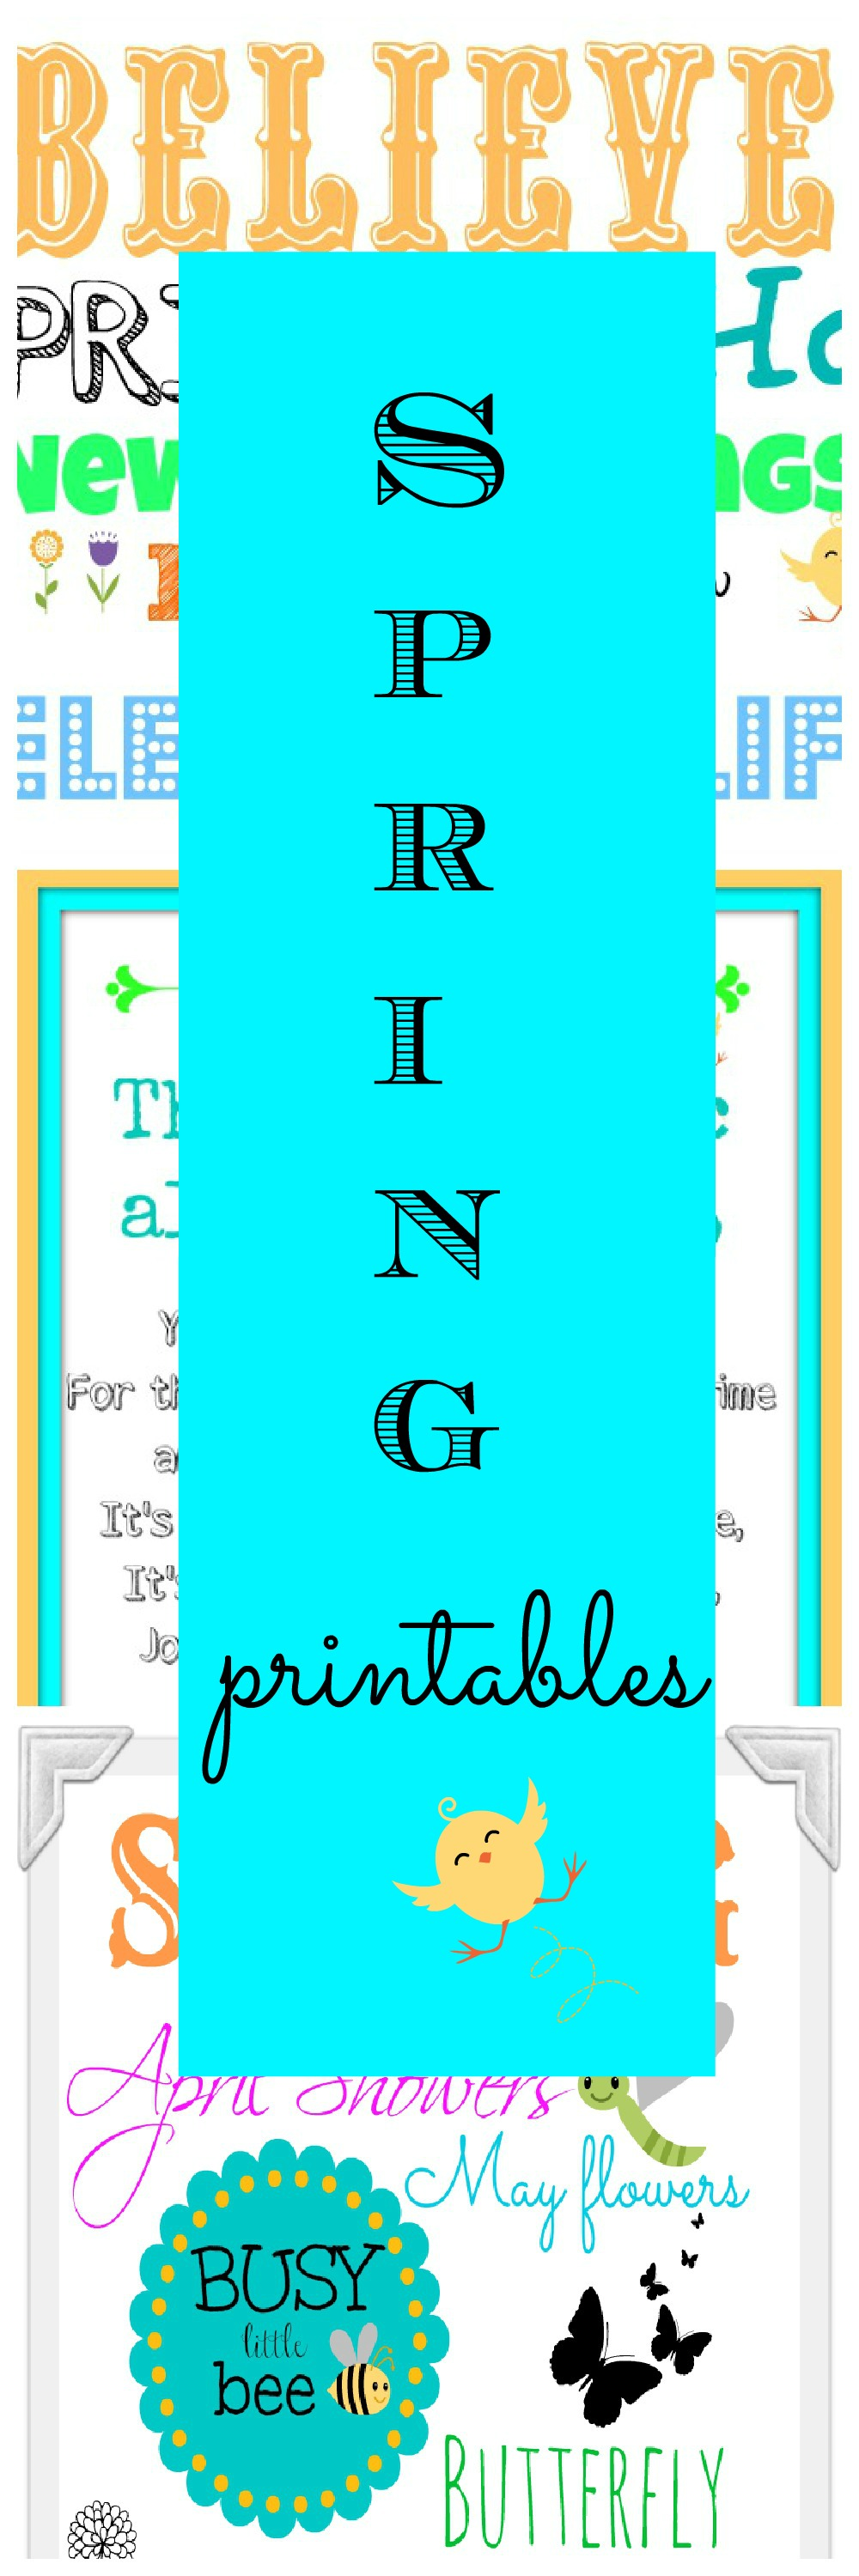 Easter-Spring time printables - Debbiedoos